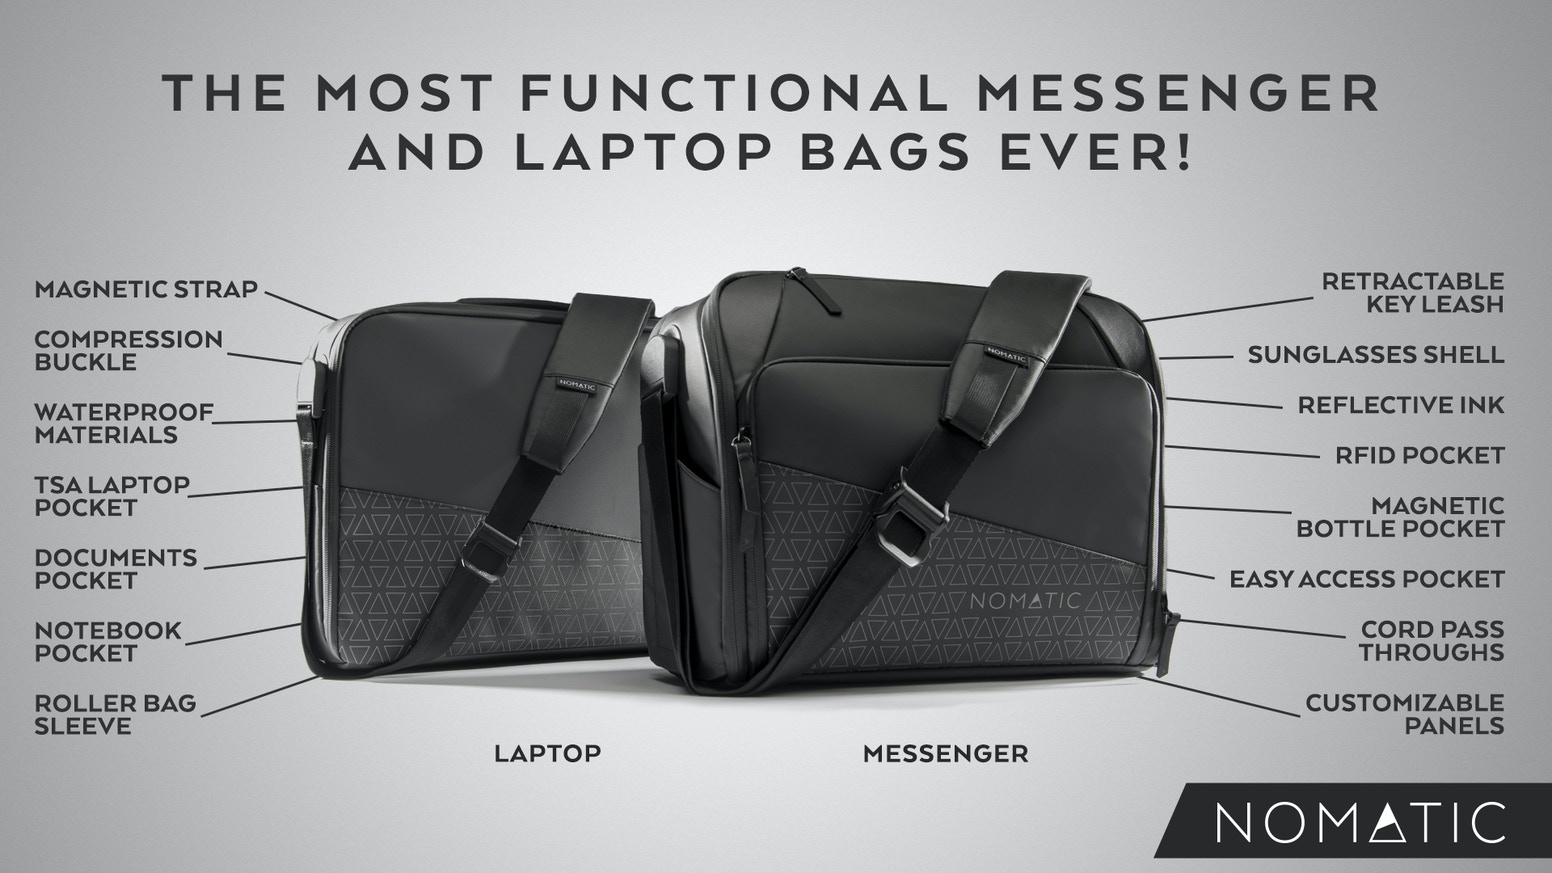 The Most Functional Messenger And Laptop Bags Ever